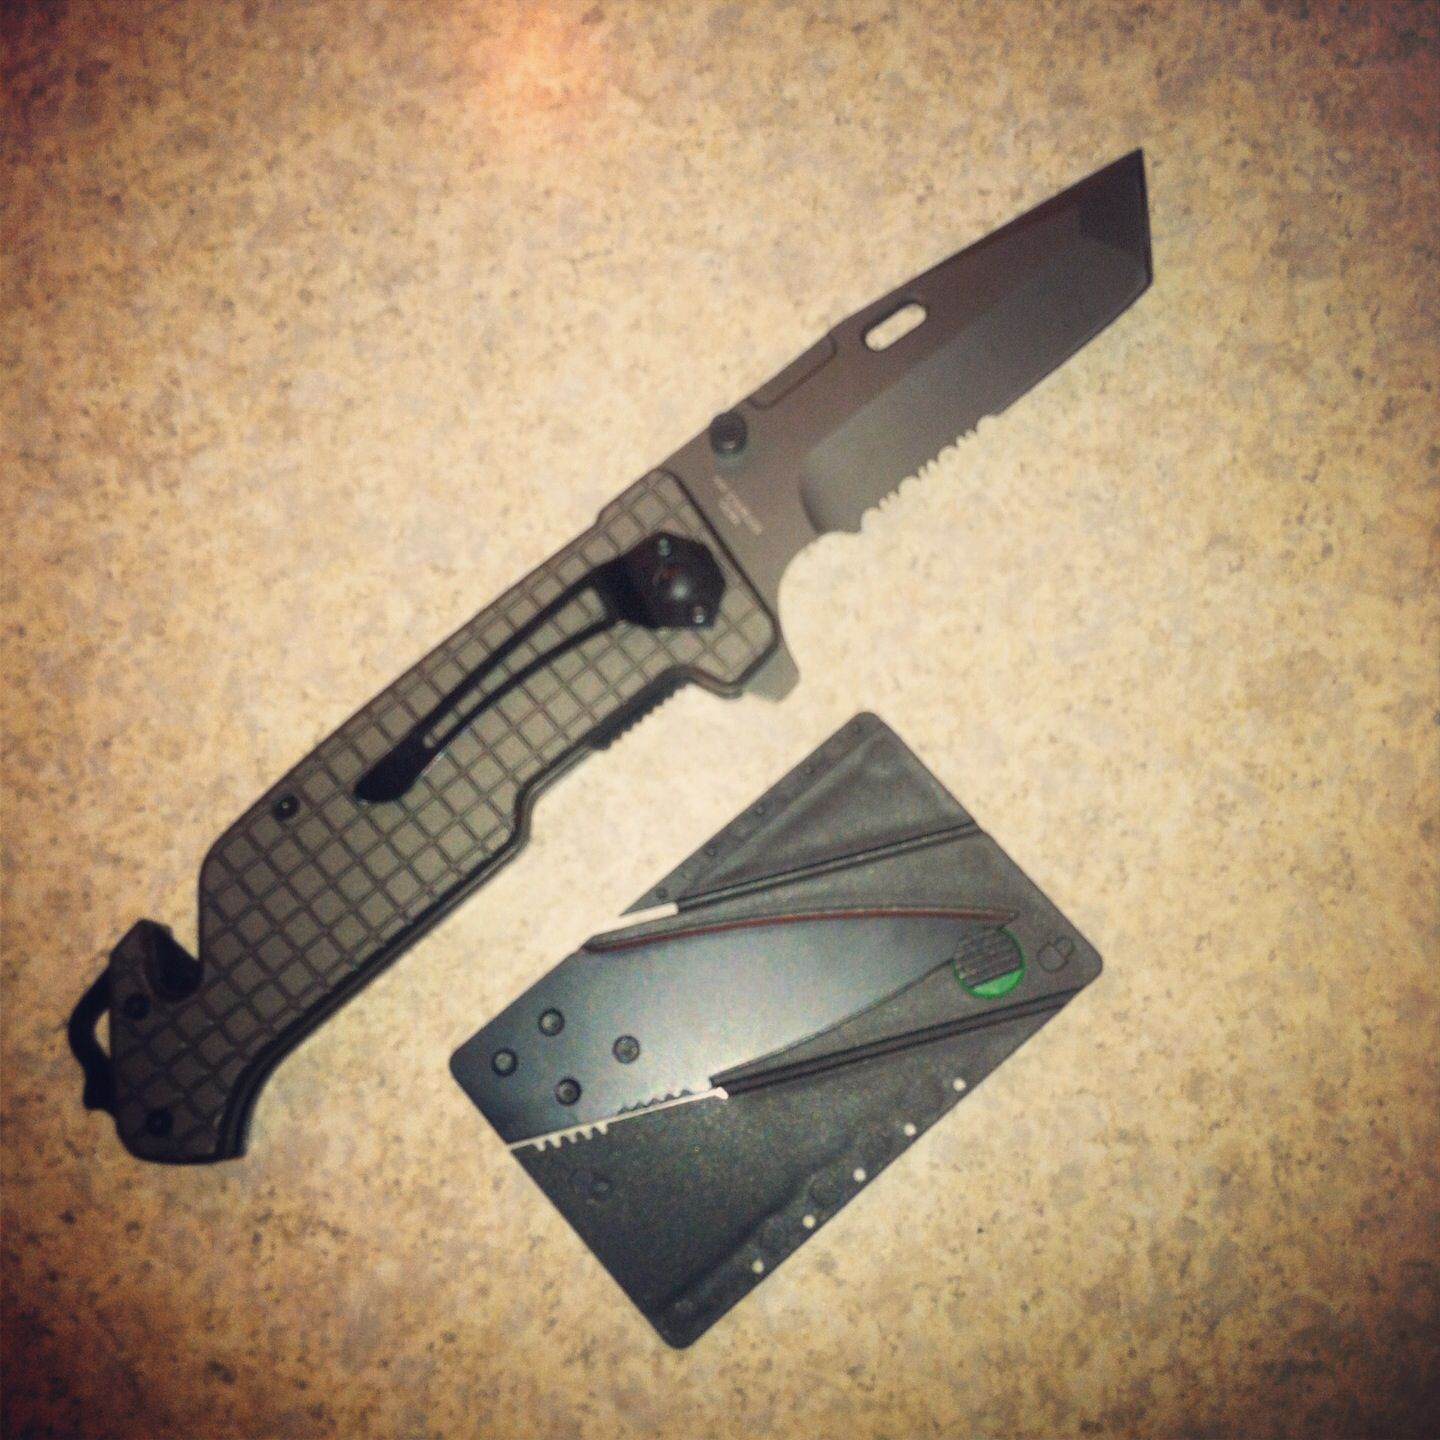 2 new additions to my everyday carry kit (EDC)  Tanto folder and